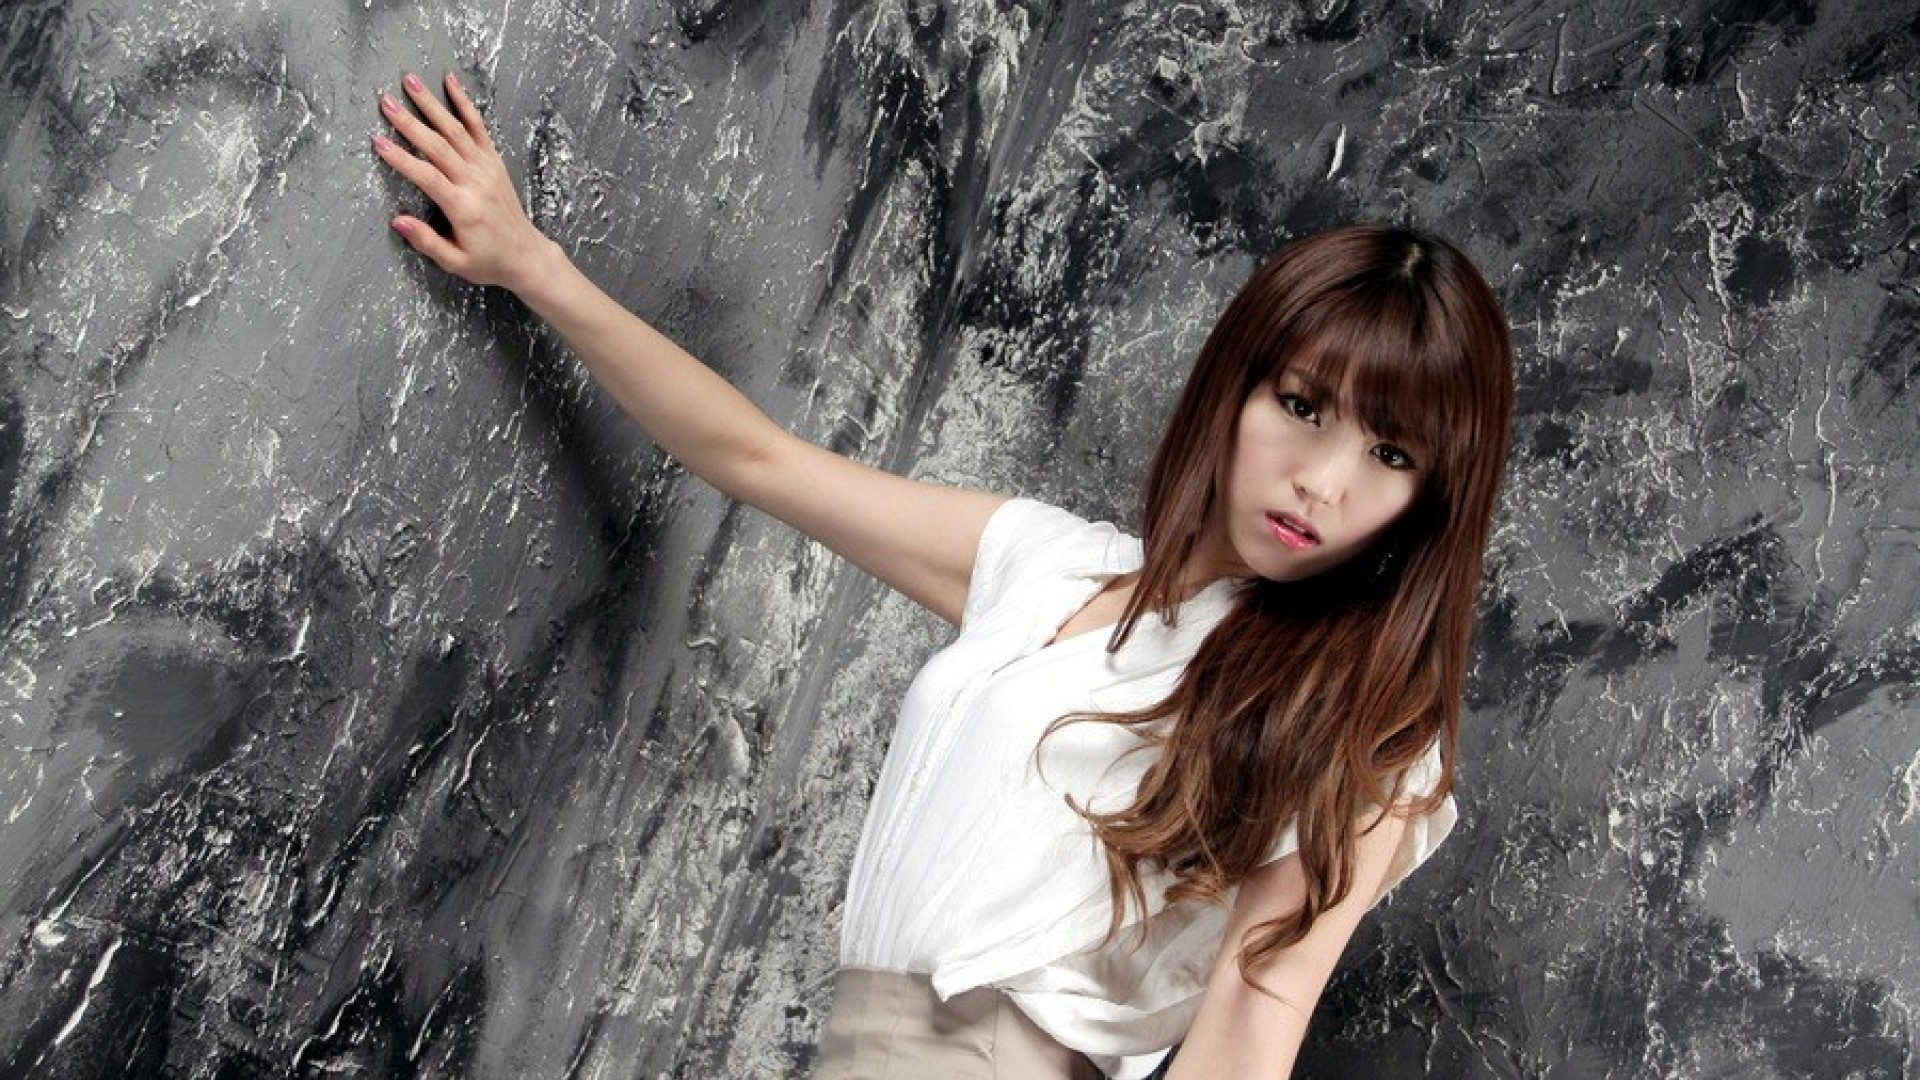 German Girl Wallpaper 1 Lee Eun Hye Hd Wallpapers Backgrounds Wallpaper Abyss